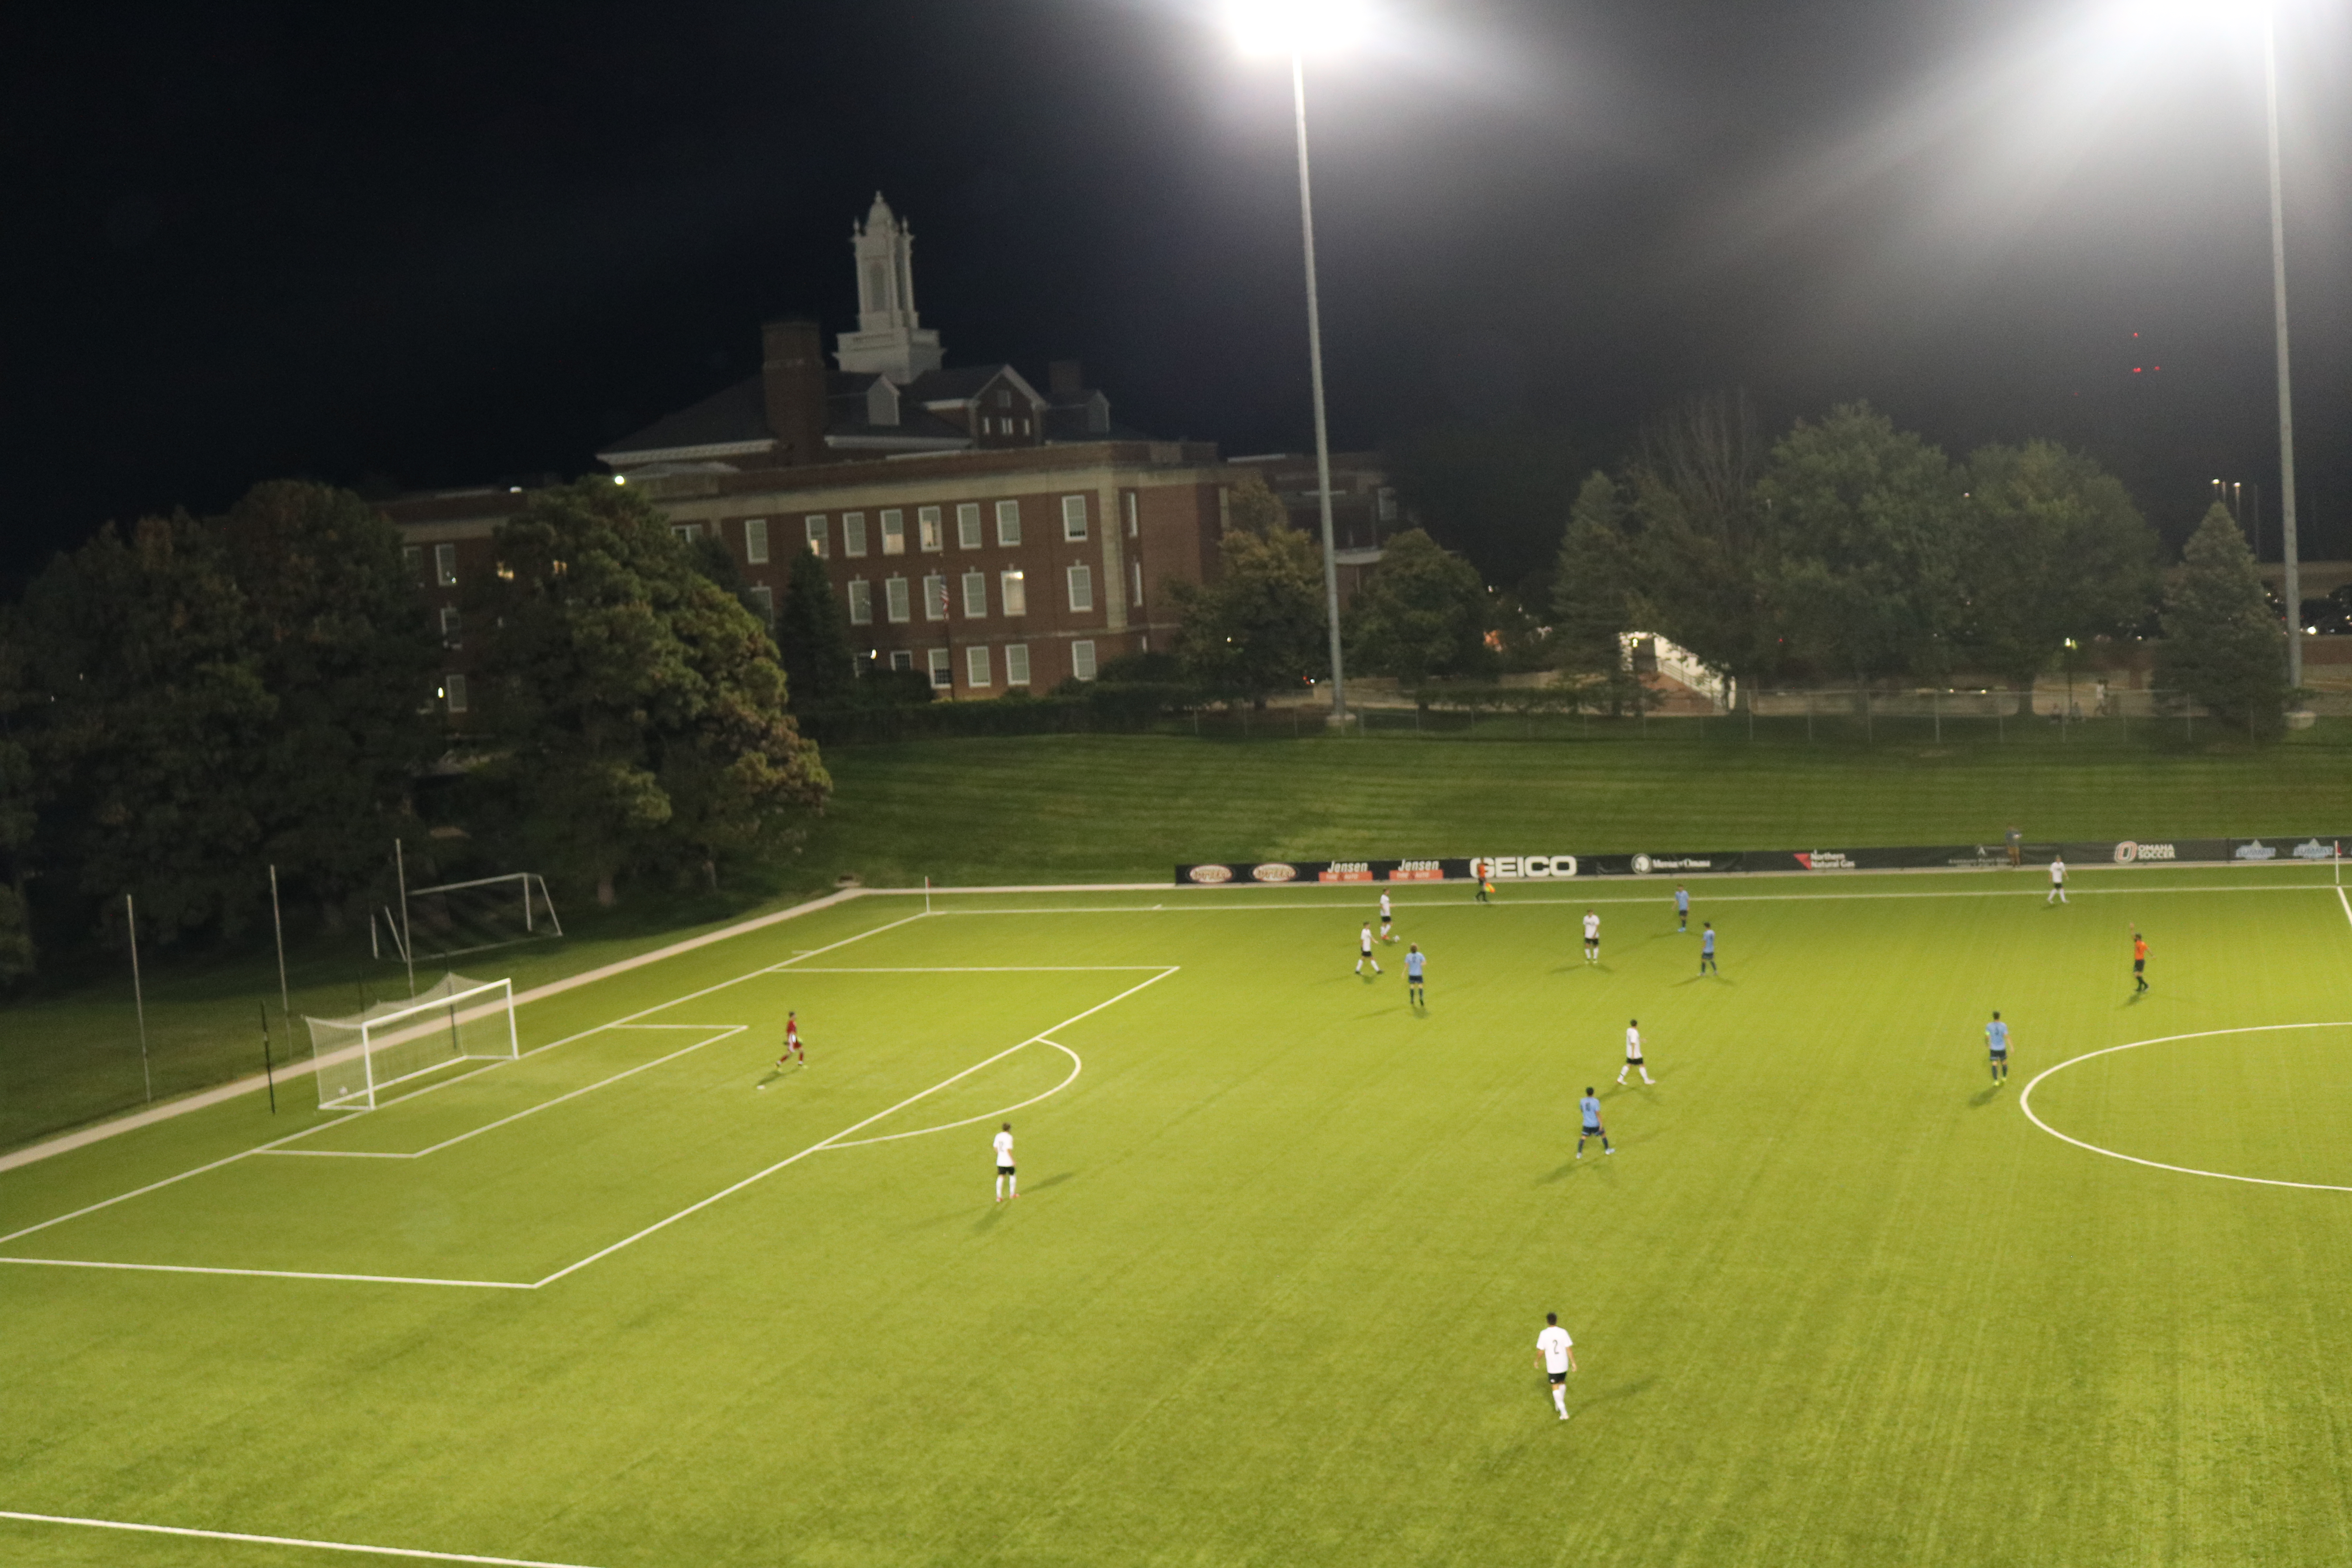 An image of the University of Nebraska at Omaha soccer field with the Arts and Science Hall in the background. Players from both teams are on the field.